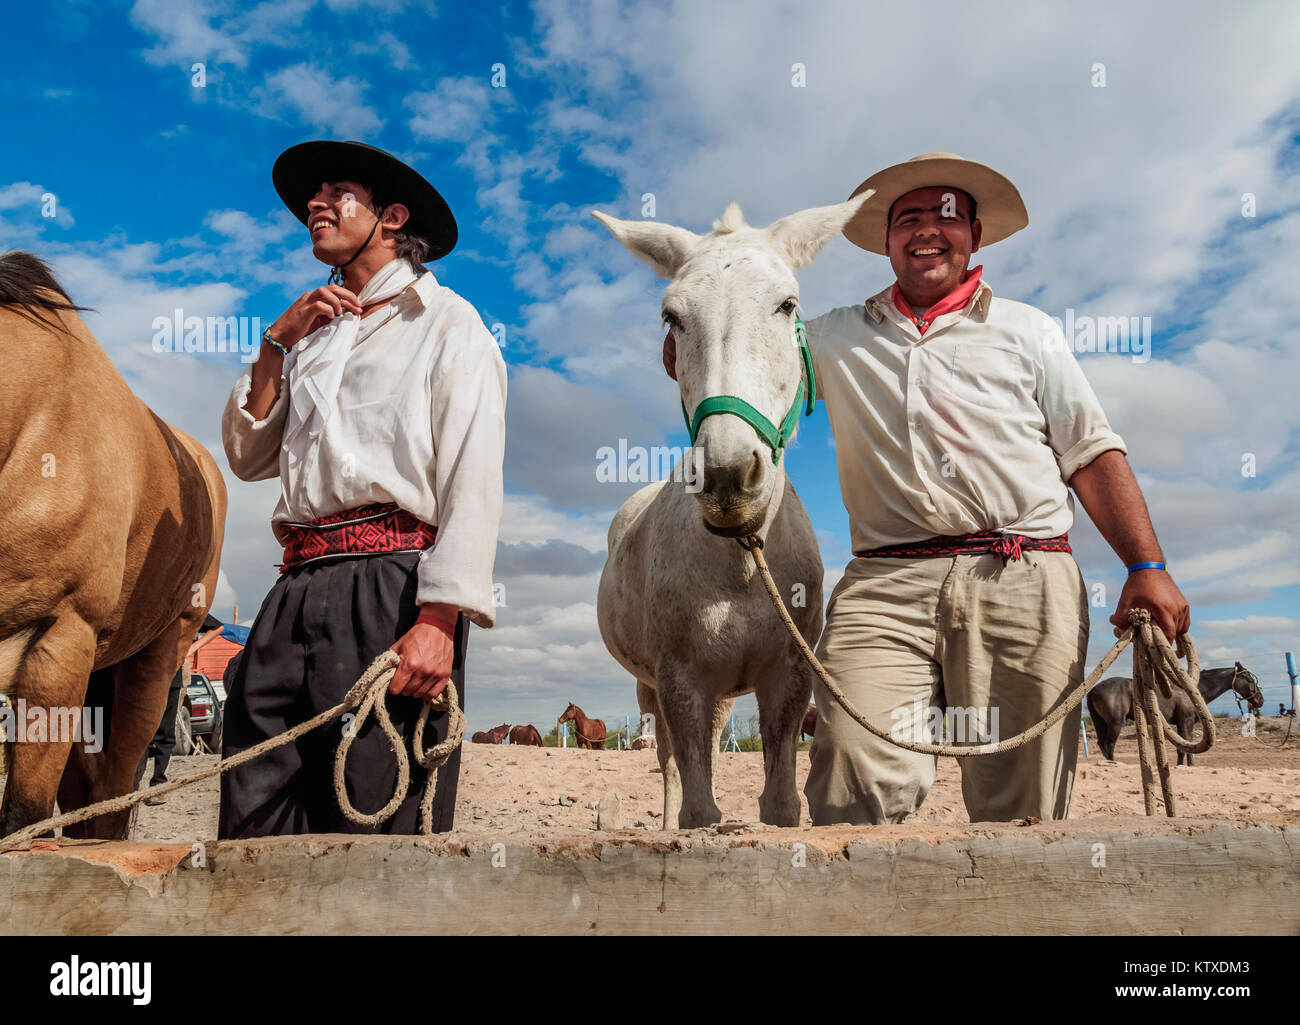 Gauchos with horses, Vallecito, San Juan Province, Argentina, South America - Stock Image